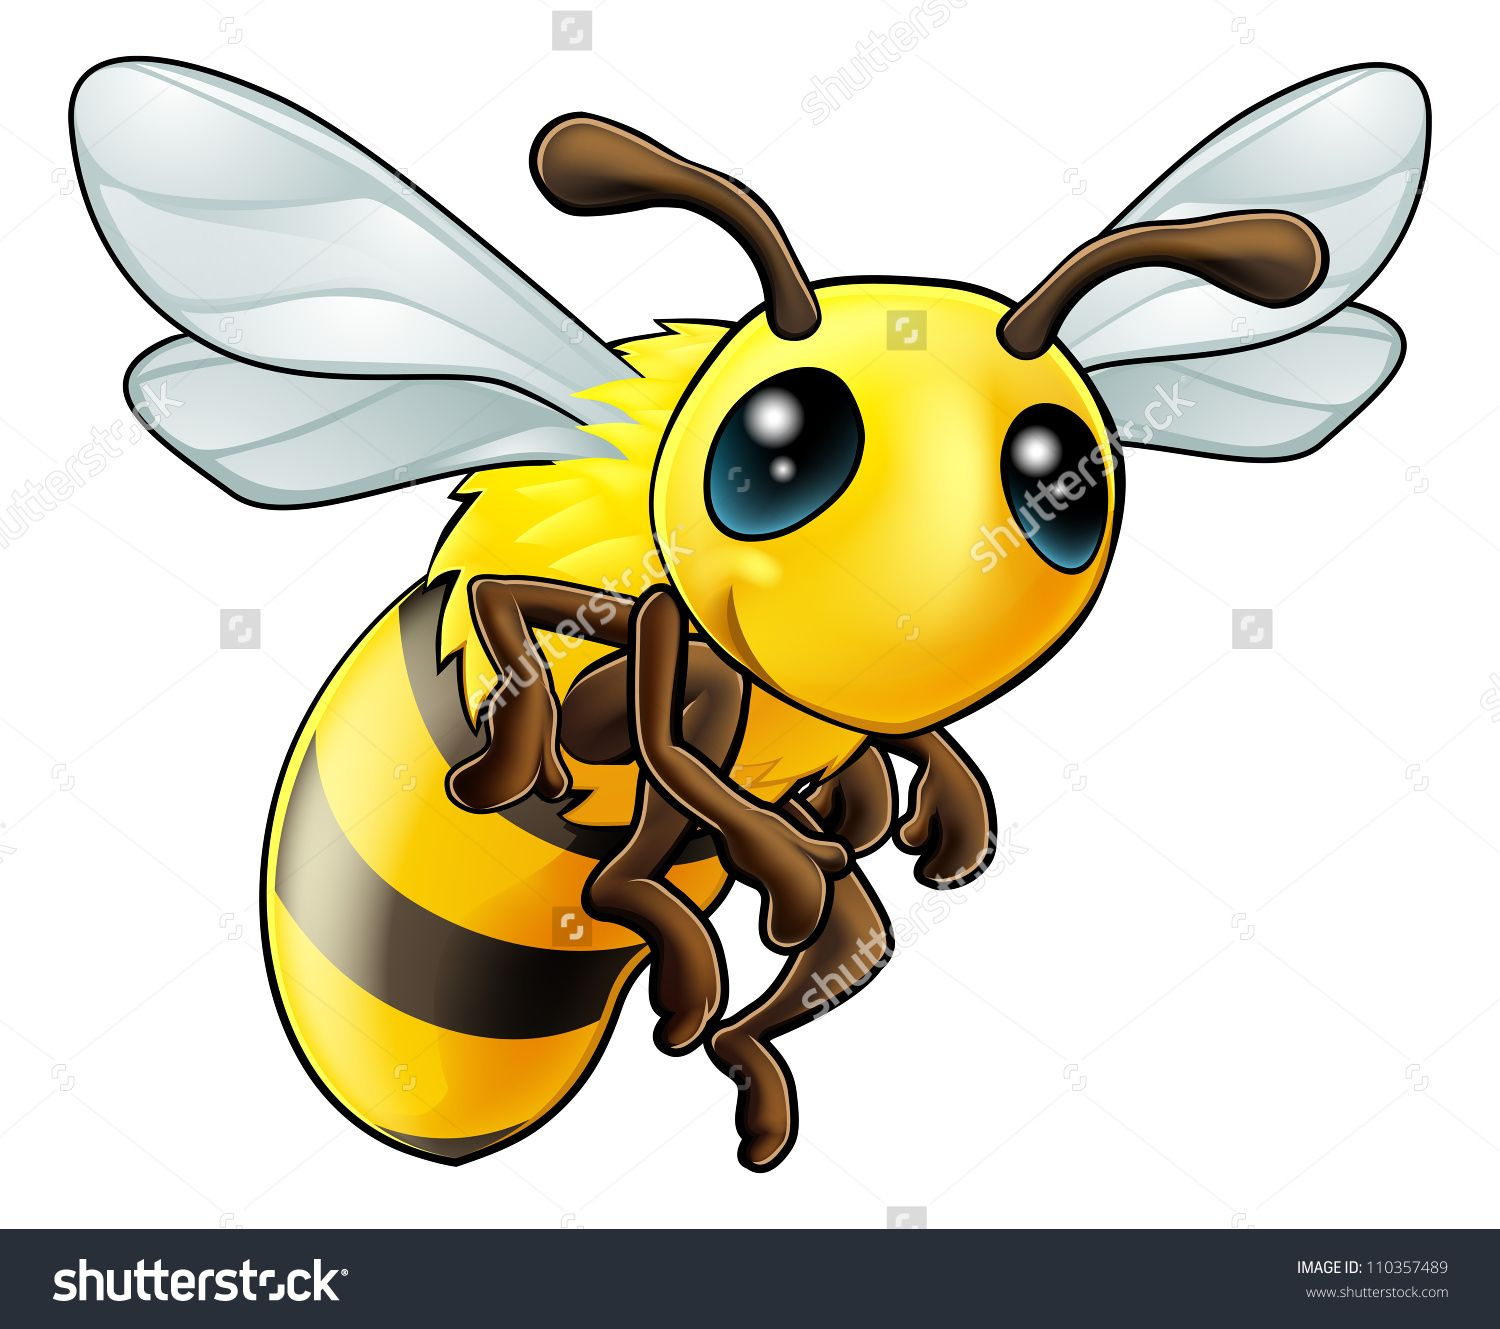 Bumble bee stock photos images pictures shutterstock bumble bee stock photos images pictures shutterstock biocorpaavc